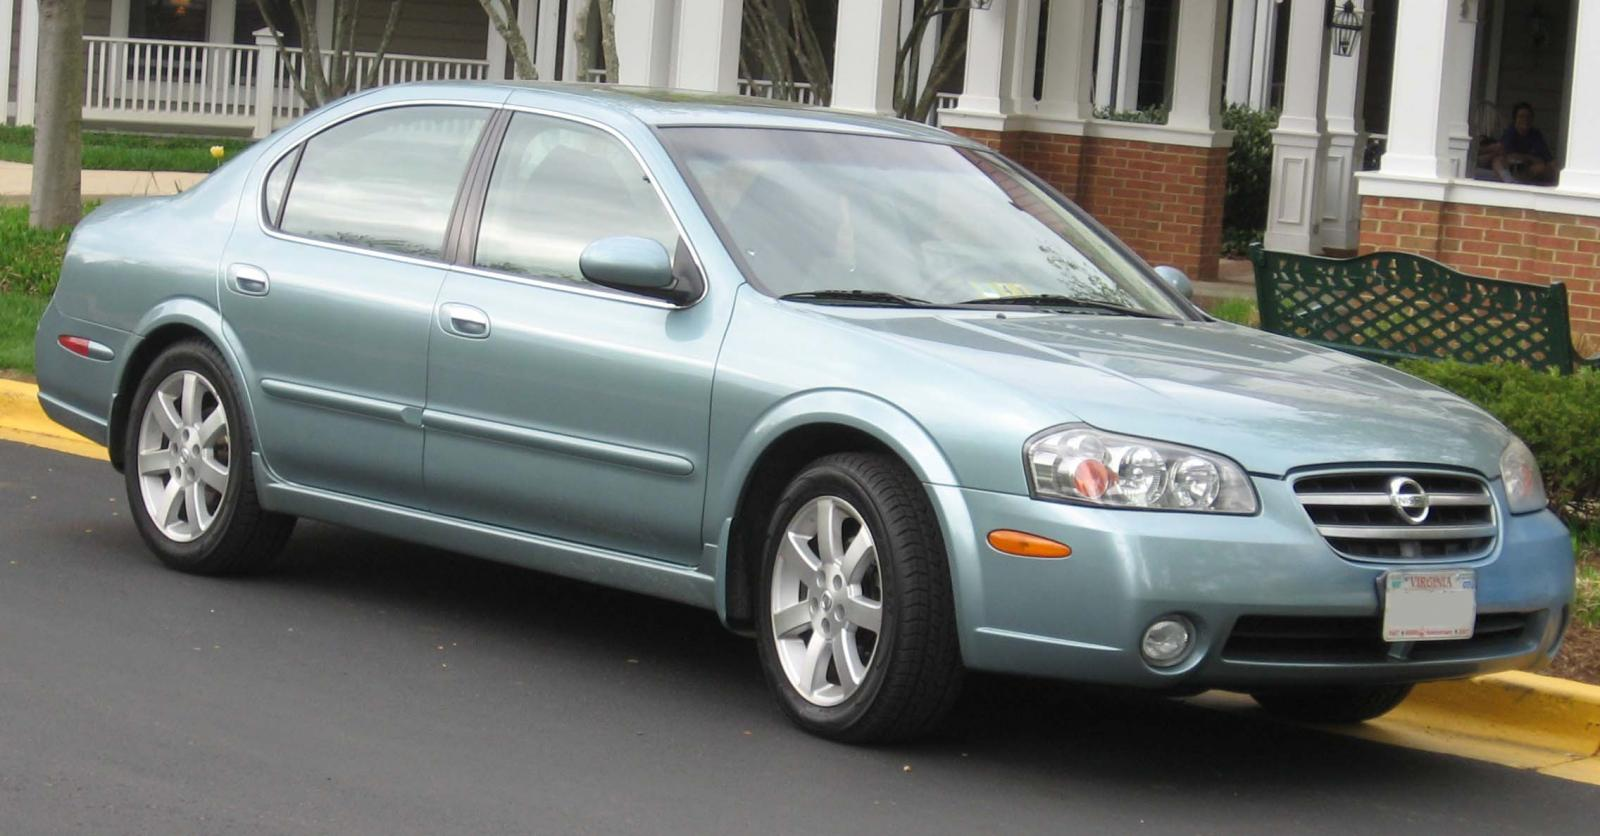 Nissan Cefiro 3 5 2002 besides Nissan Micra 1 2 2009 Specs And Images in addition 91 Dodge Dakota 5 2 Fuel Pump Wiring Diagram additionally 2nd Gen 12v additionally Nissan Altima 2 4 2002 Specs And Images. on nissan bluebird 1994 automatic